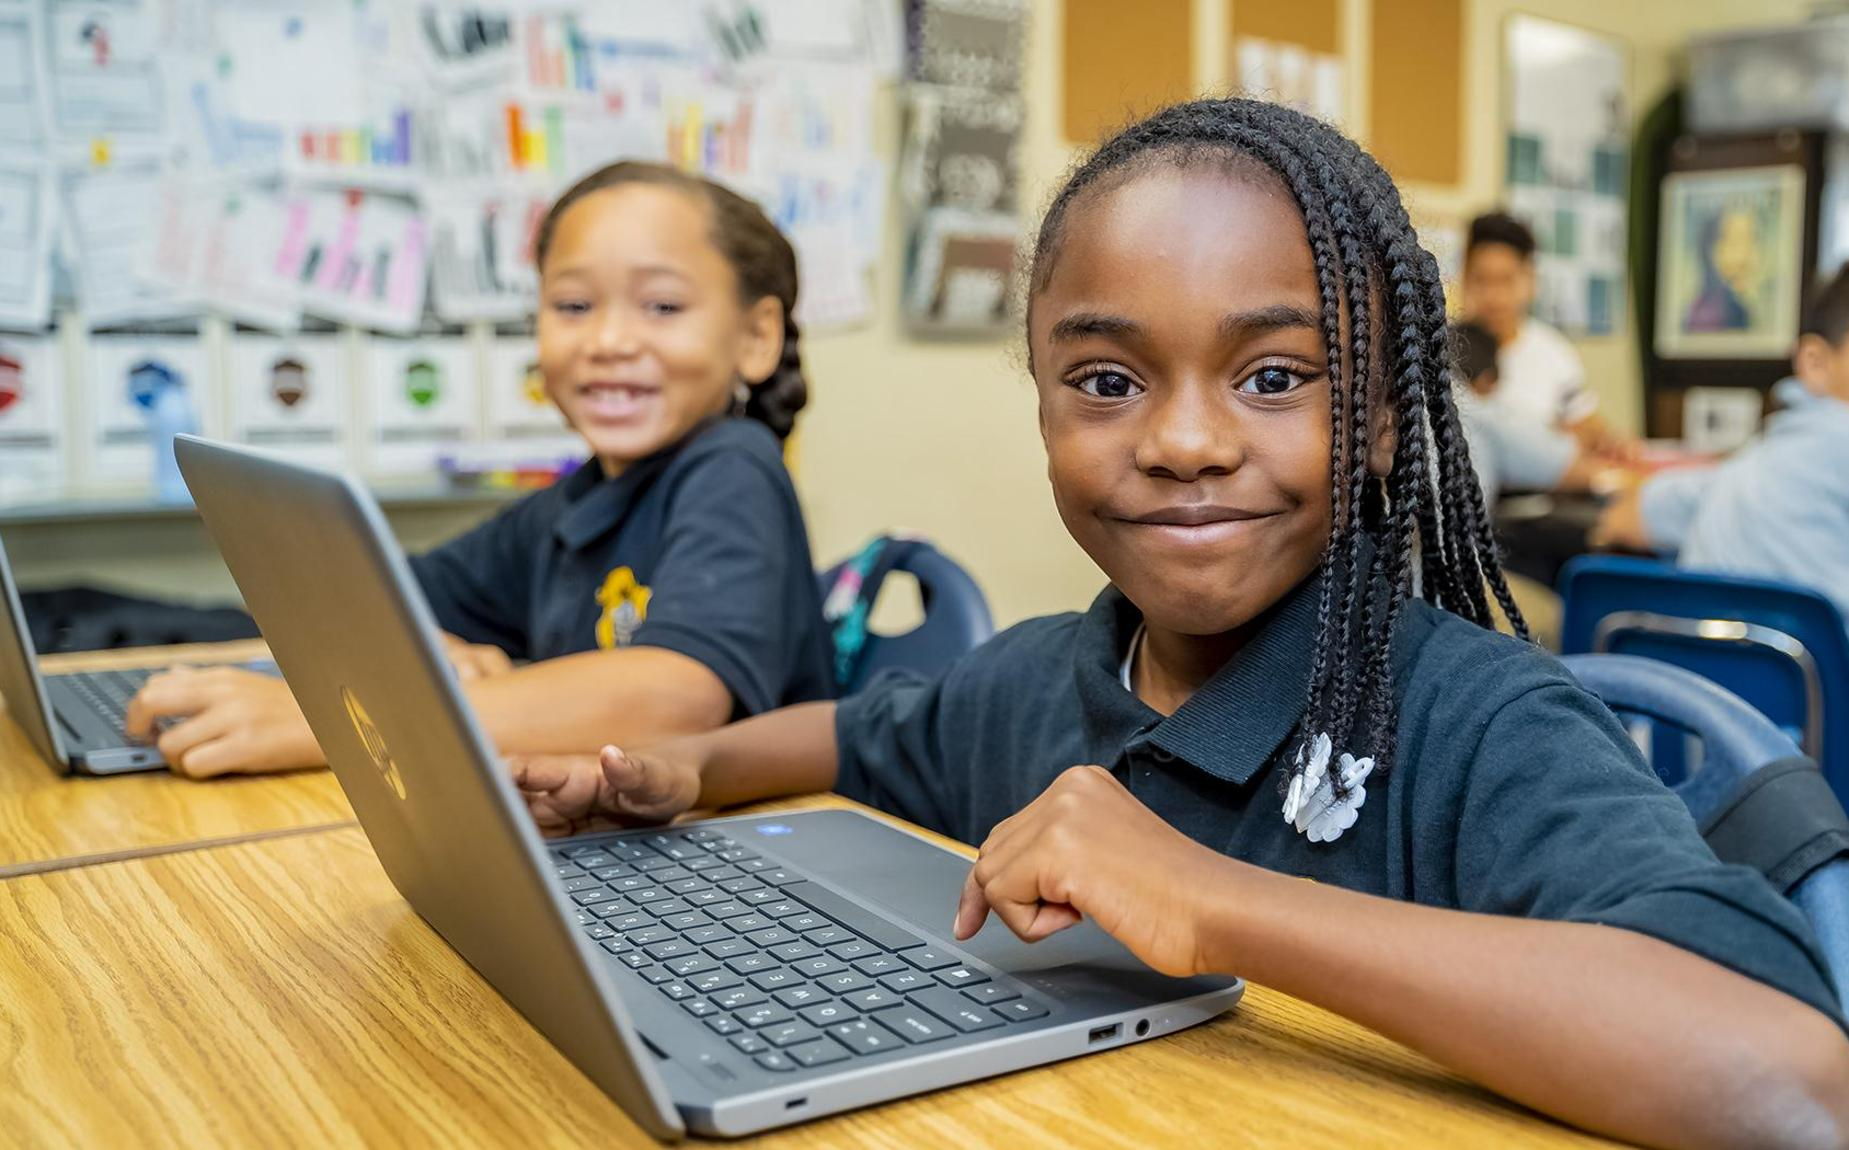 2 Students with Computers at their desks in classroom and smiling at the camera.